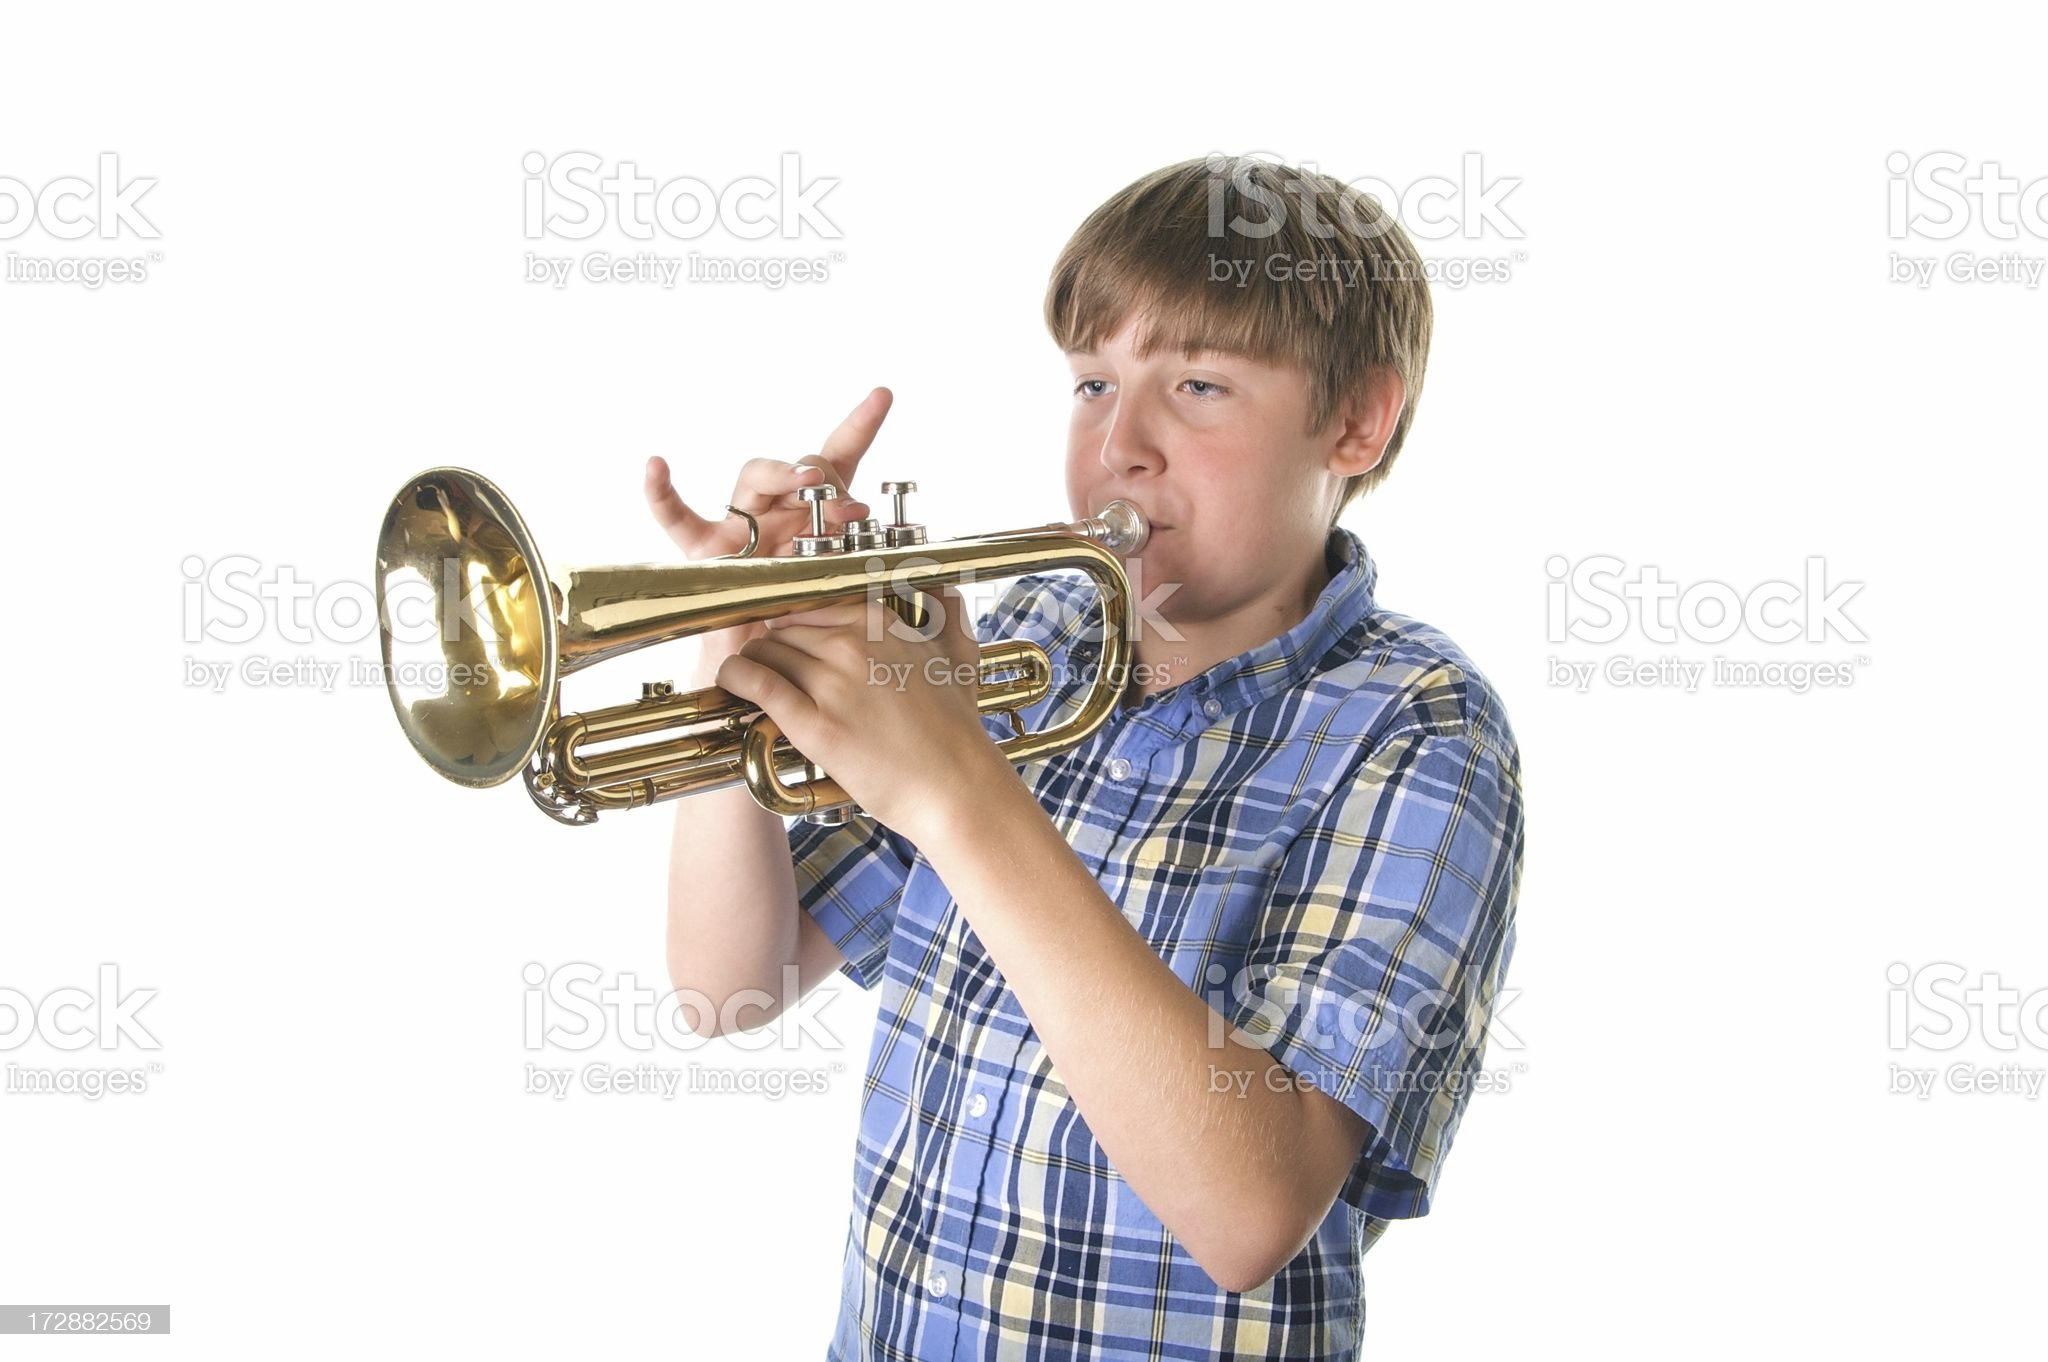 Boy Playing the Trumpet on a White Background royalty-free stock photo